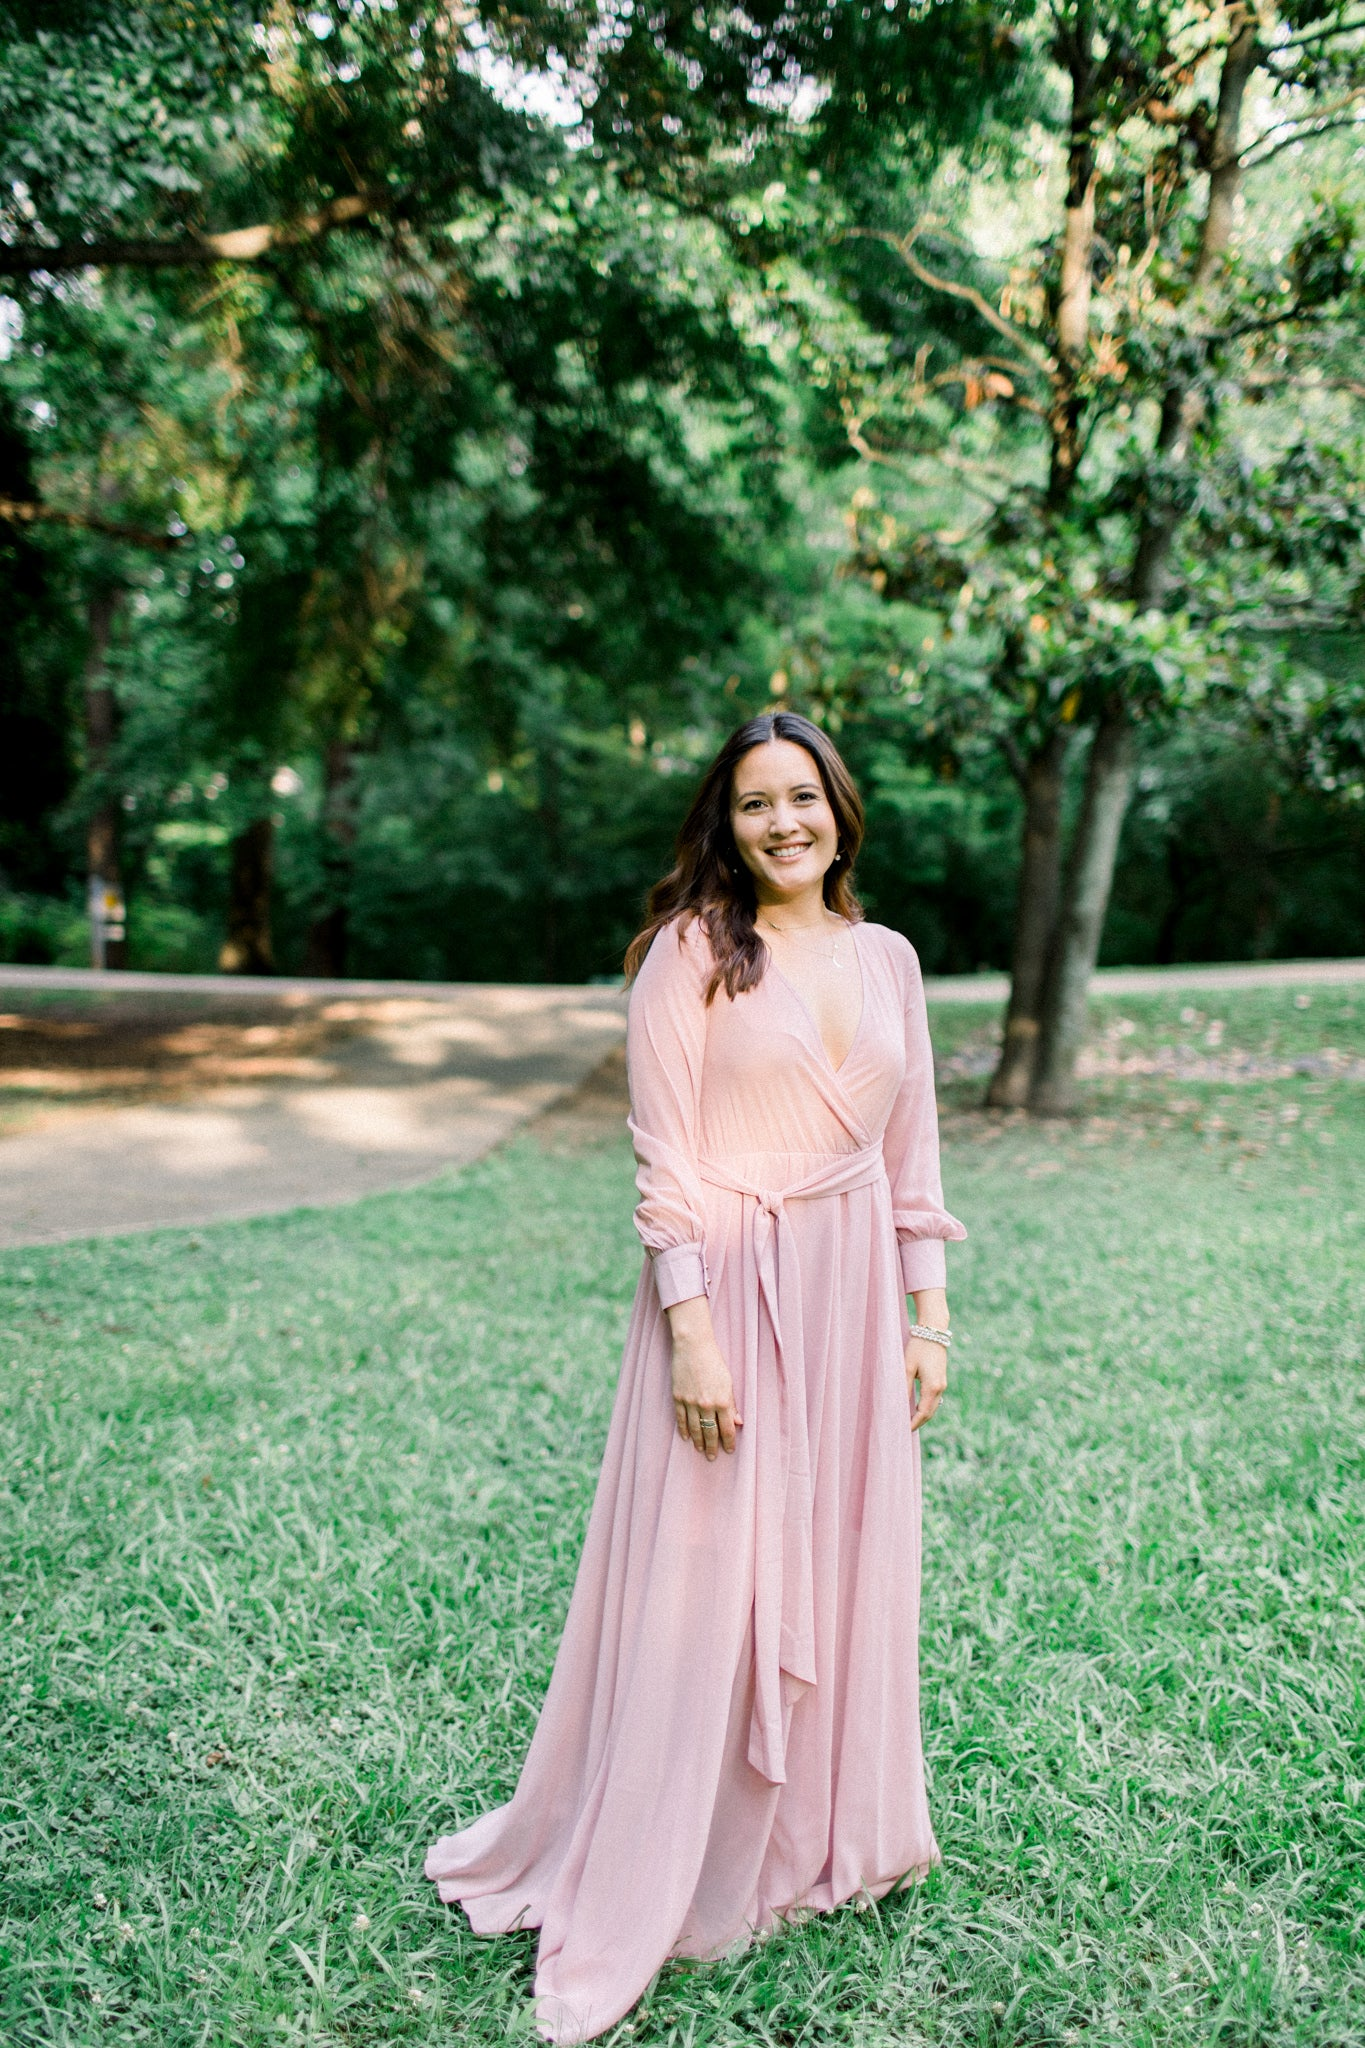 Anna | Long Sleeve Pink Maxi Dress